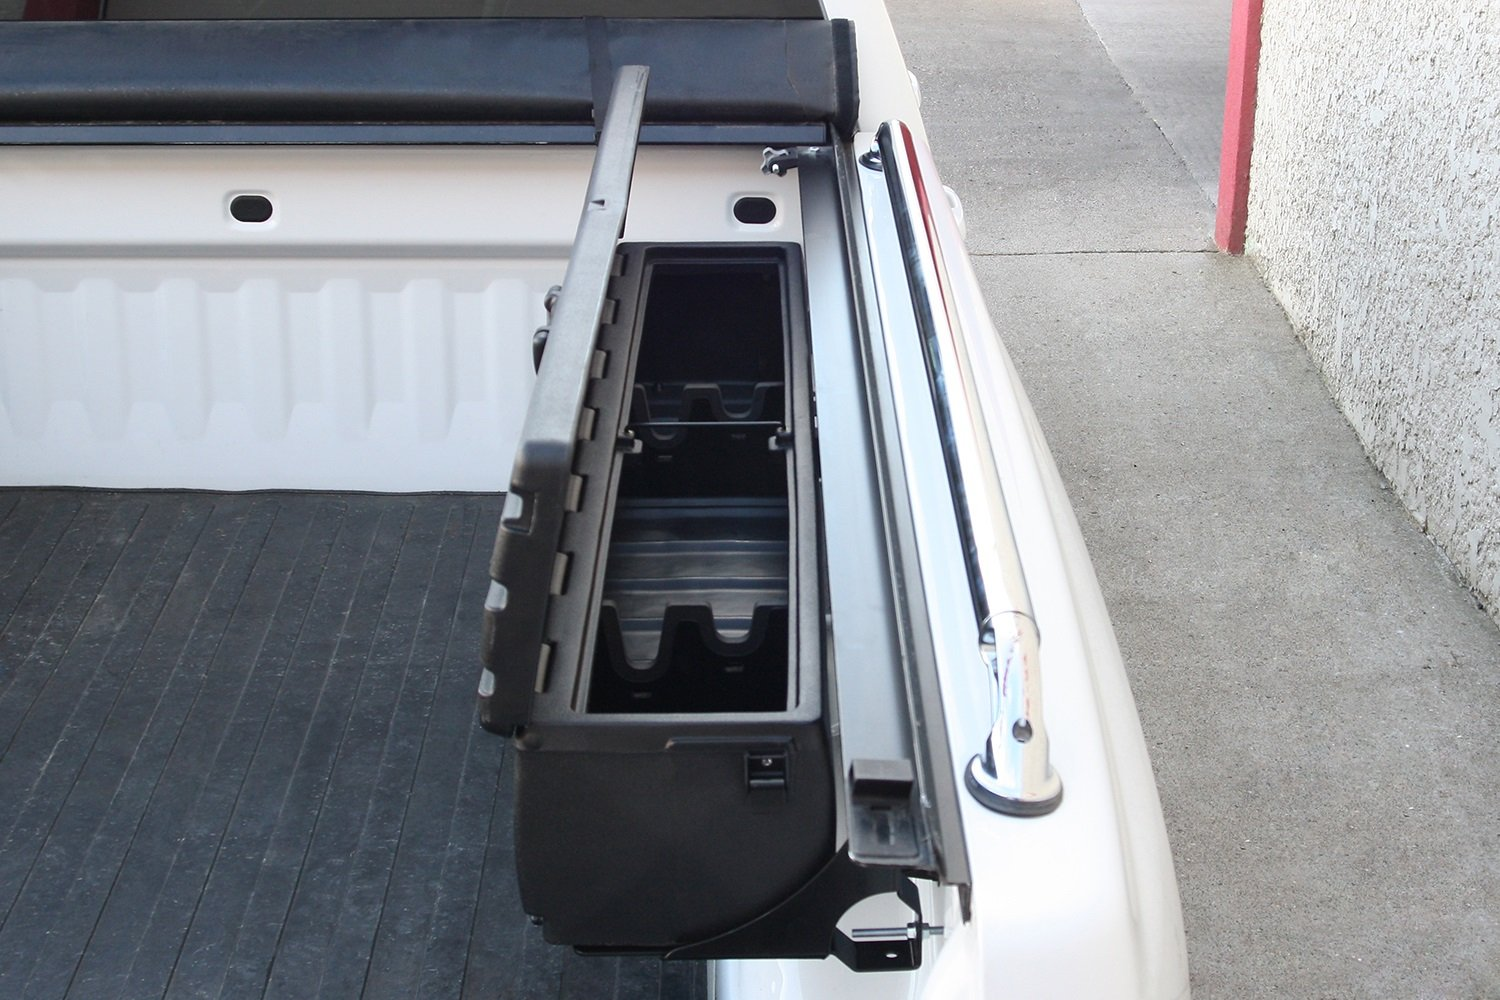 sliding toolbox a beds bed made buyers truck engineered your specifically for out products duty introduces line box slide tool light